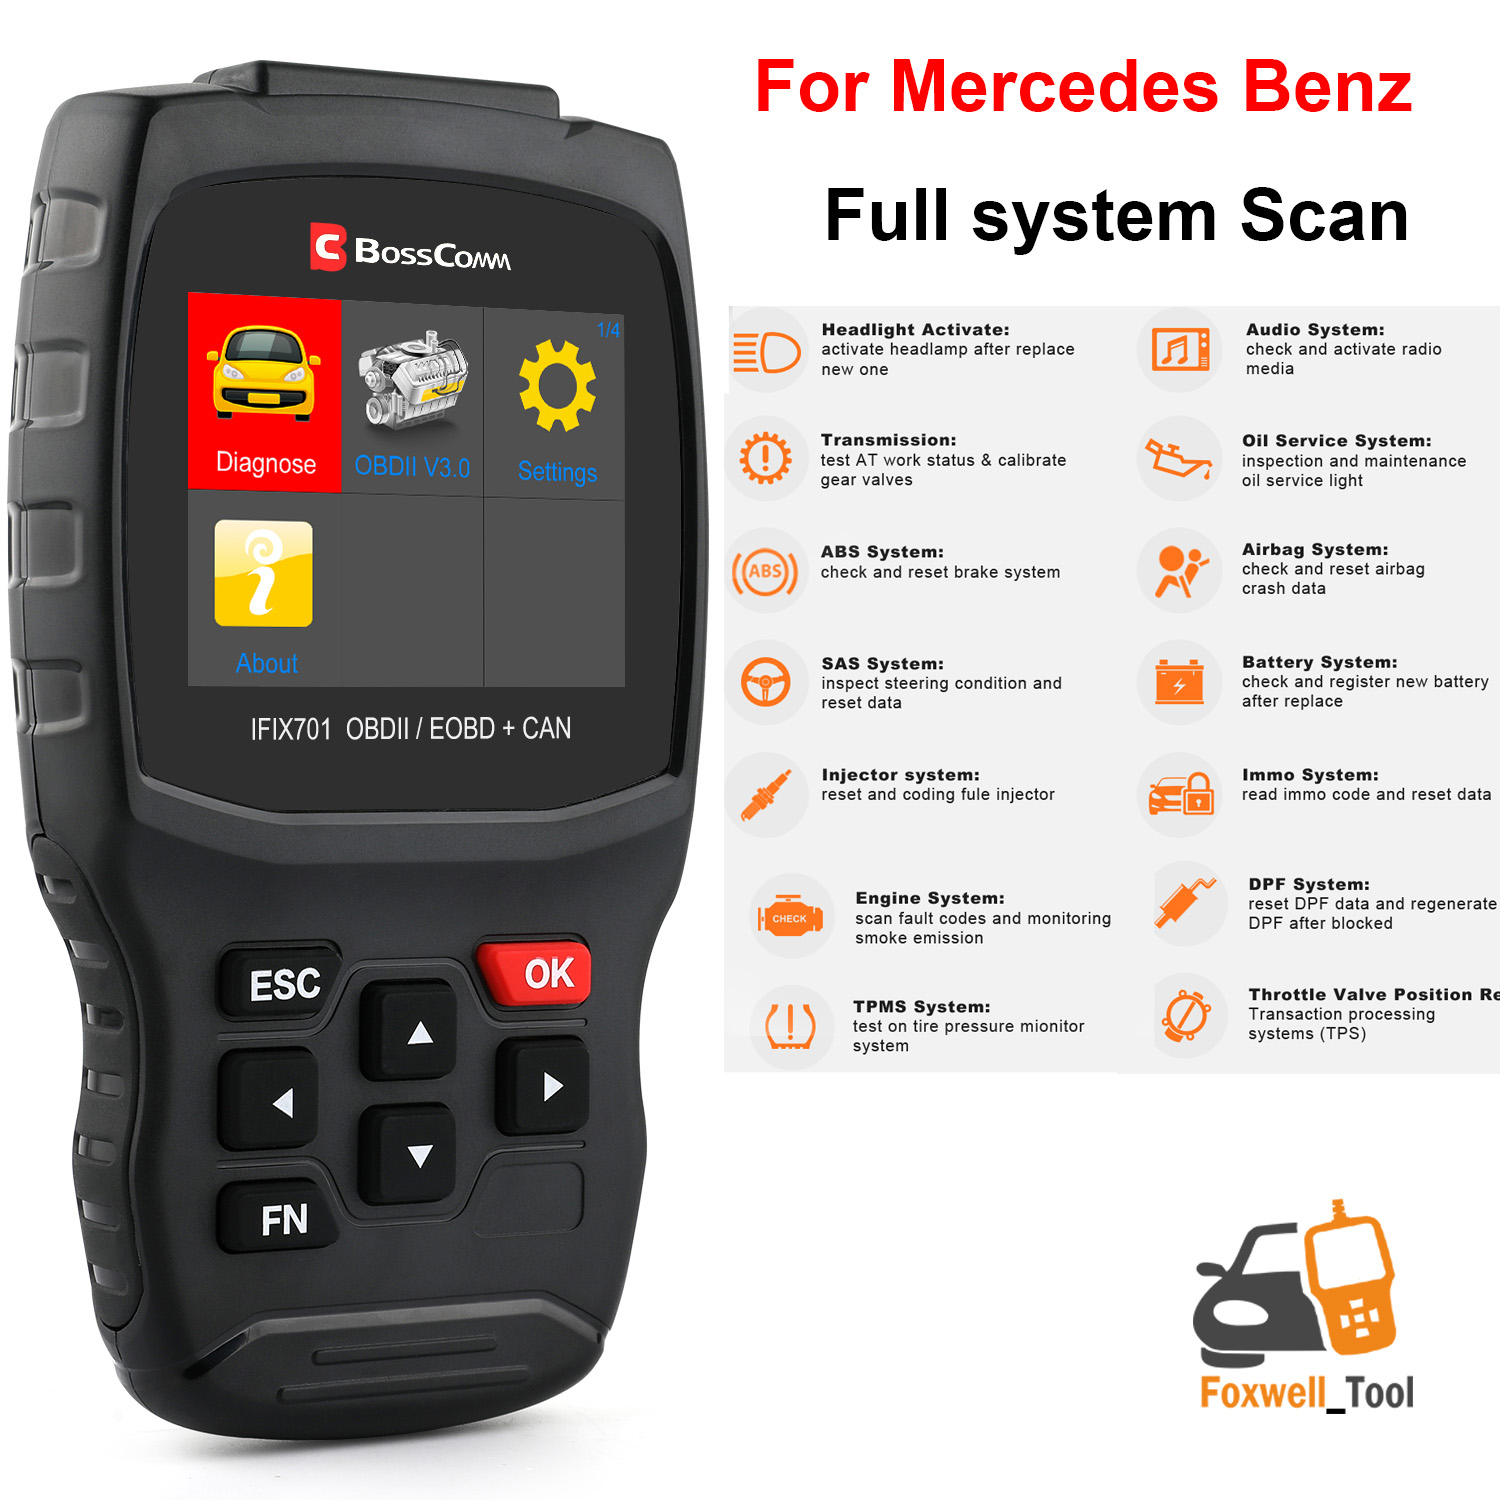 Details about IFIX701 For BENZ Car Engine ABS SRS airbag DPF Immobilizer  TPMS EPB Oil reset